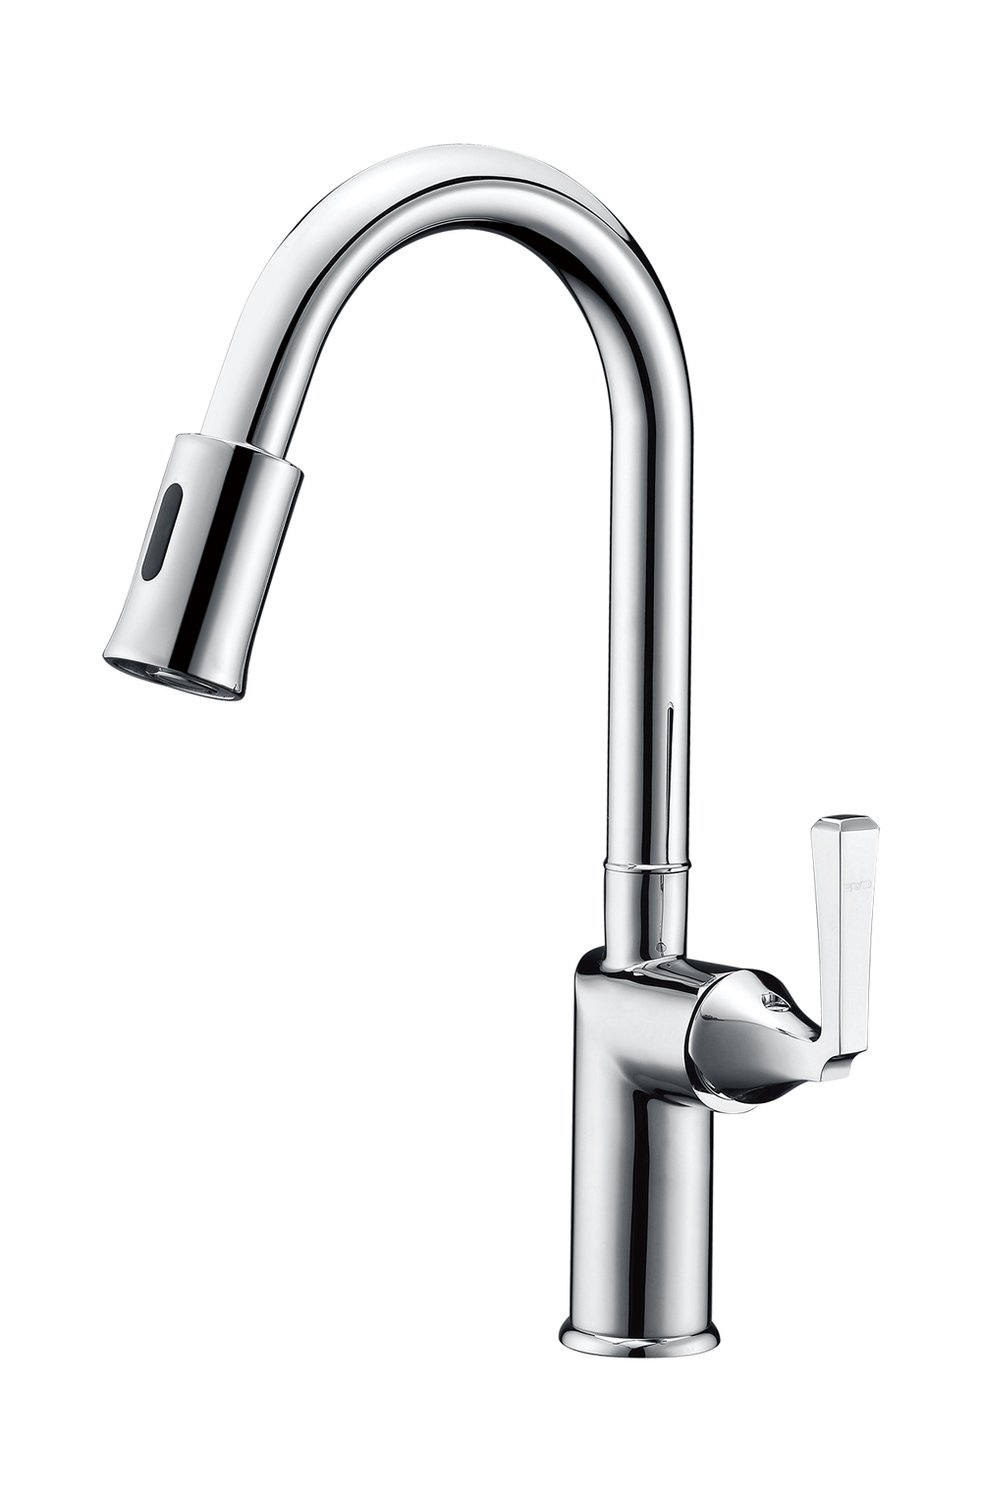 Single-handle sensor kitchen faucet